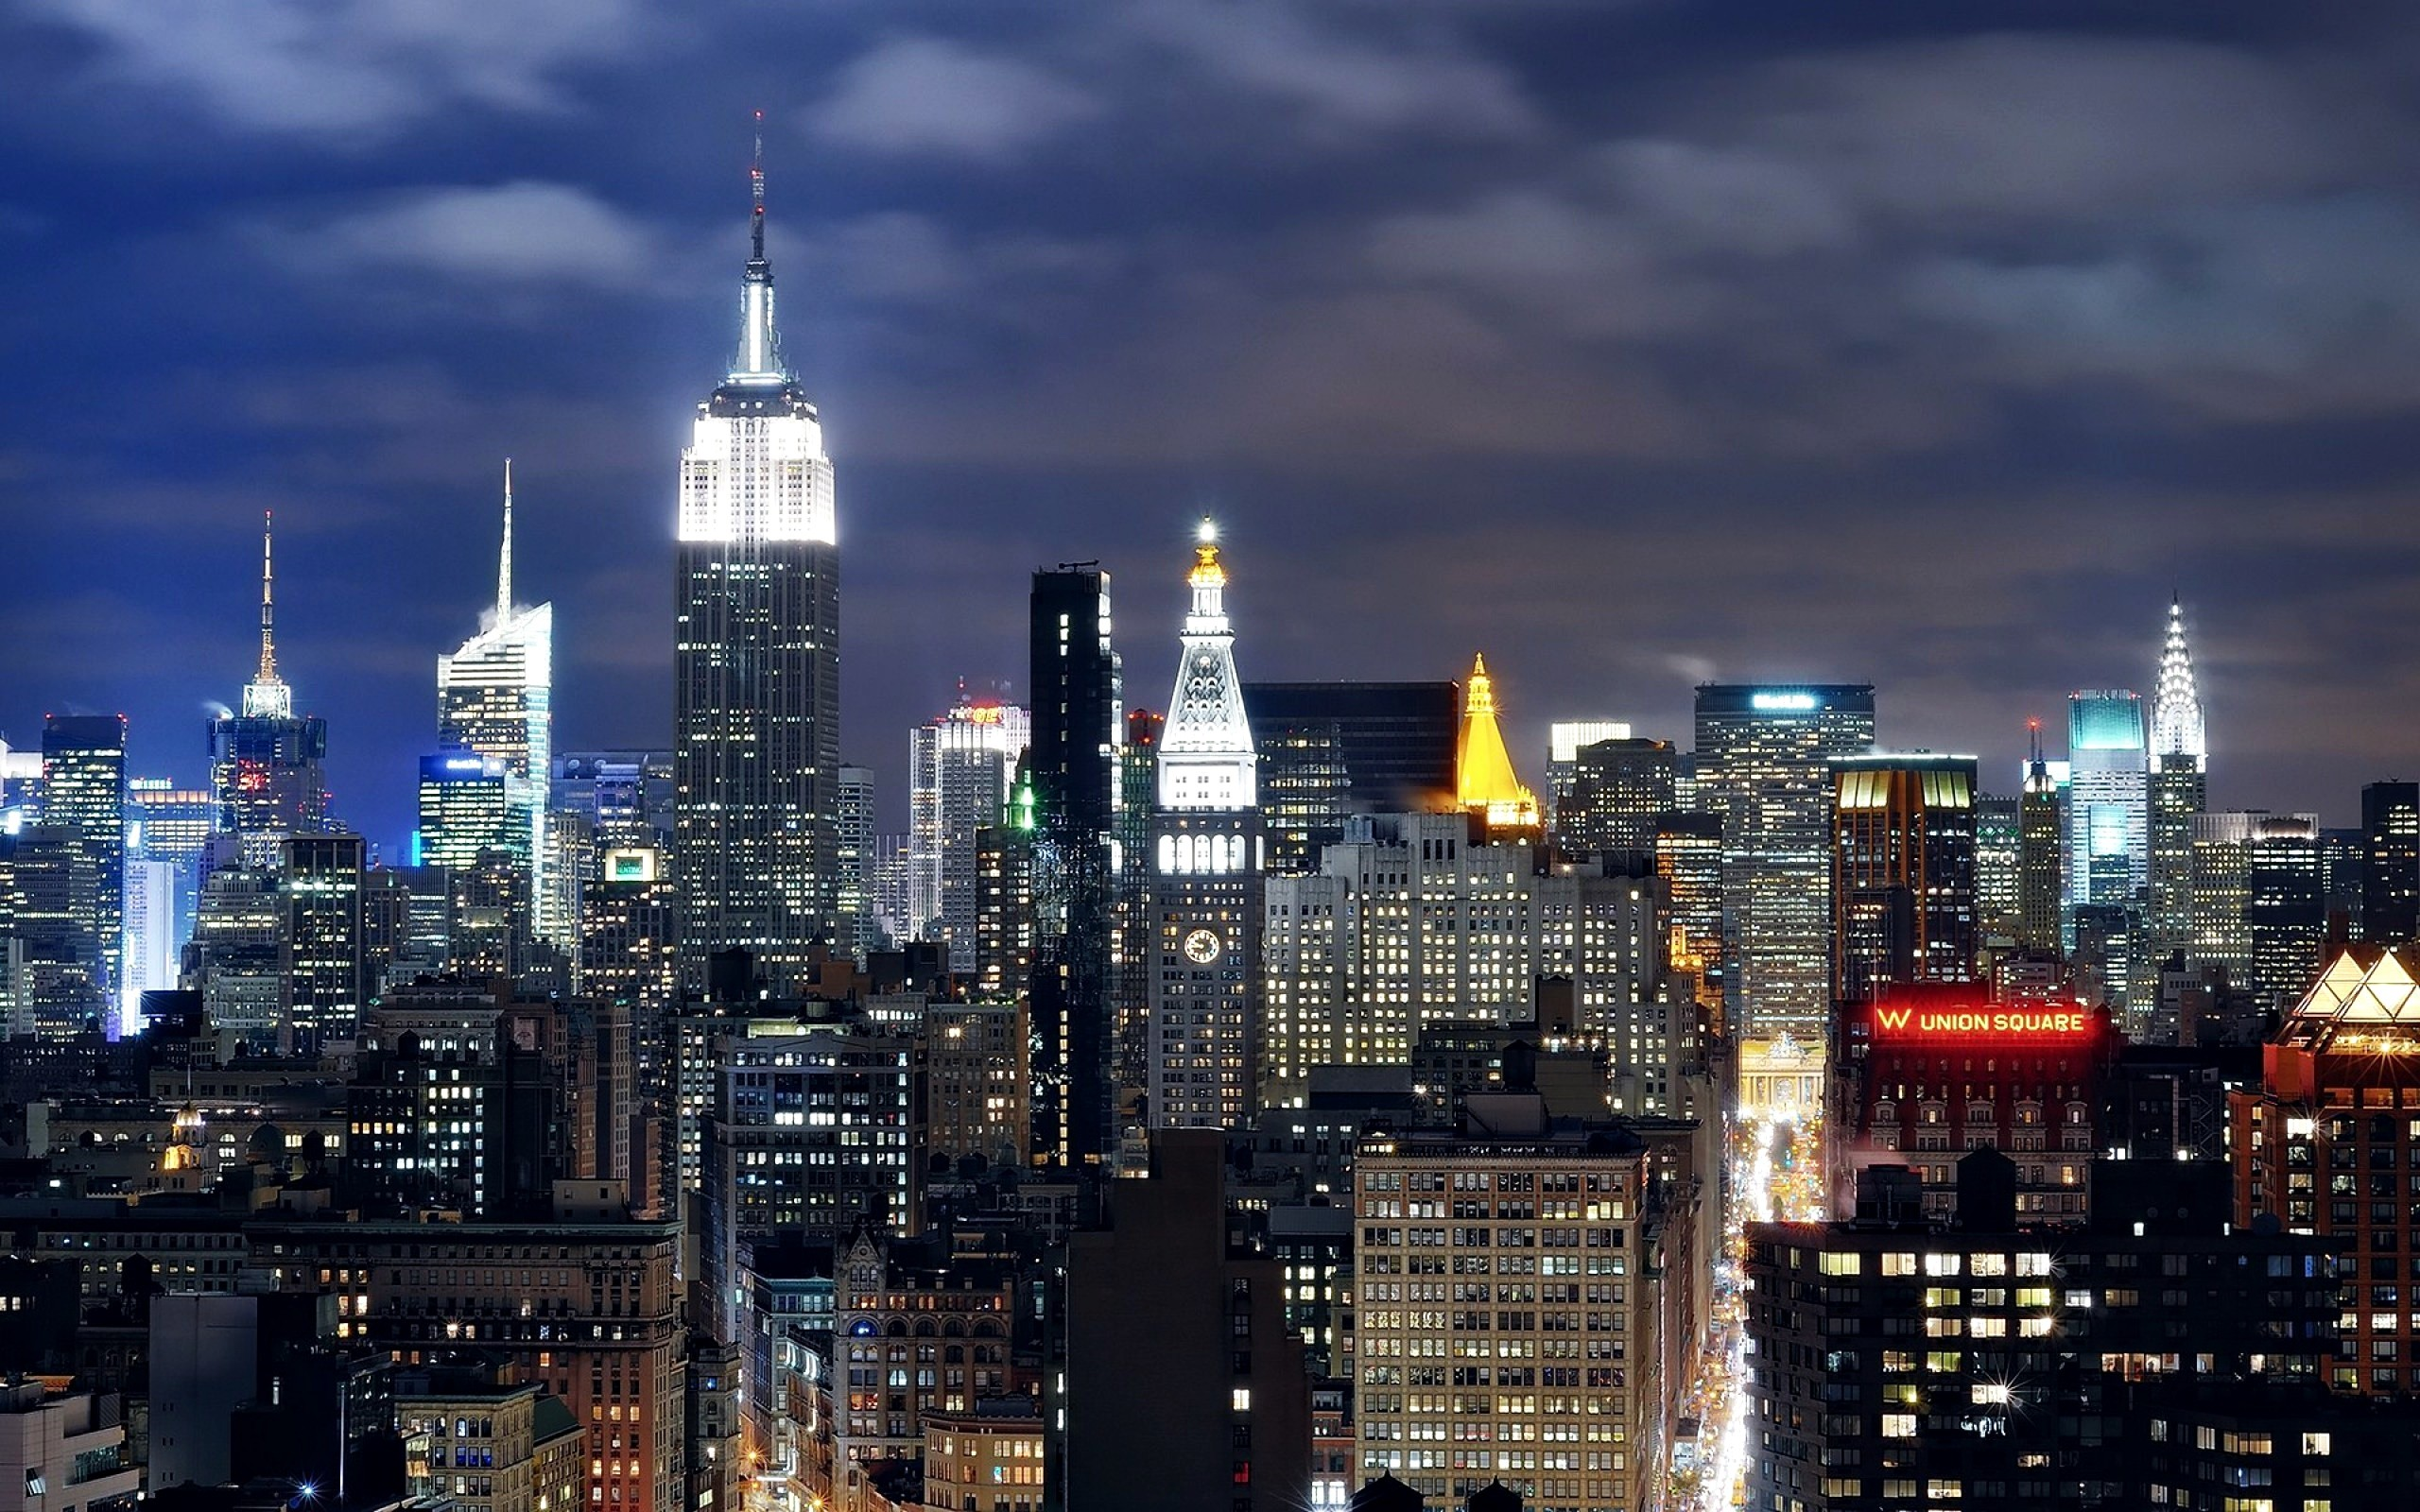 Midtown Manhattan, New York skyscrapers at night | Widescreen and Full .